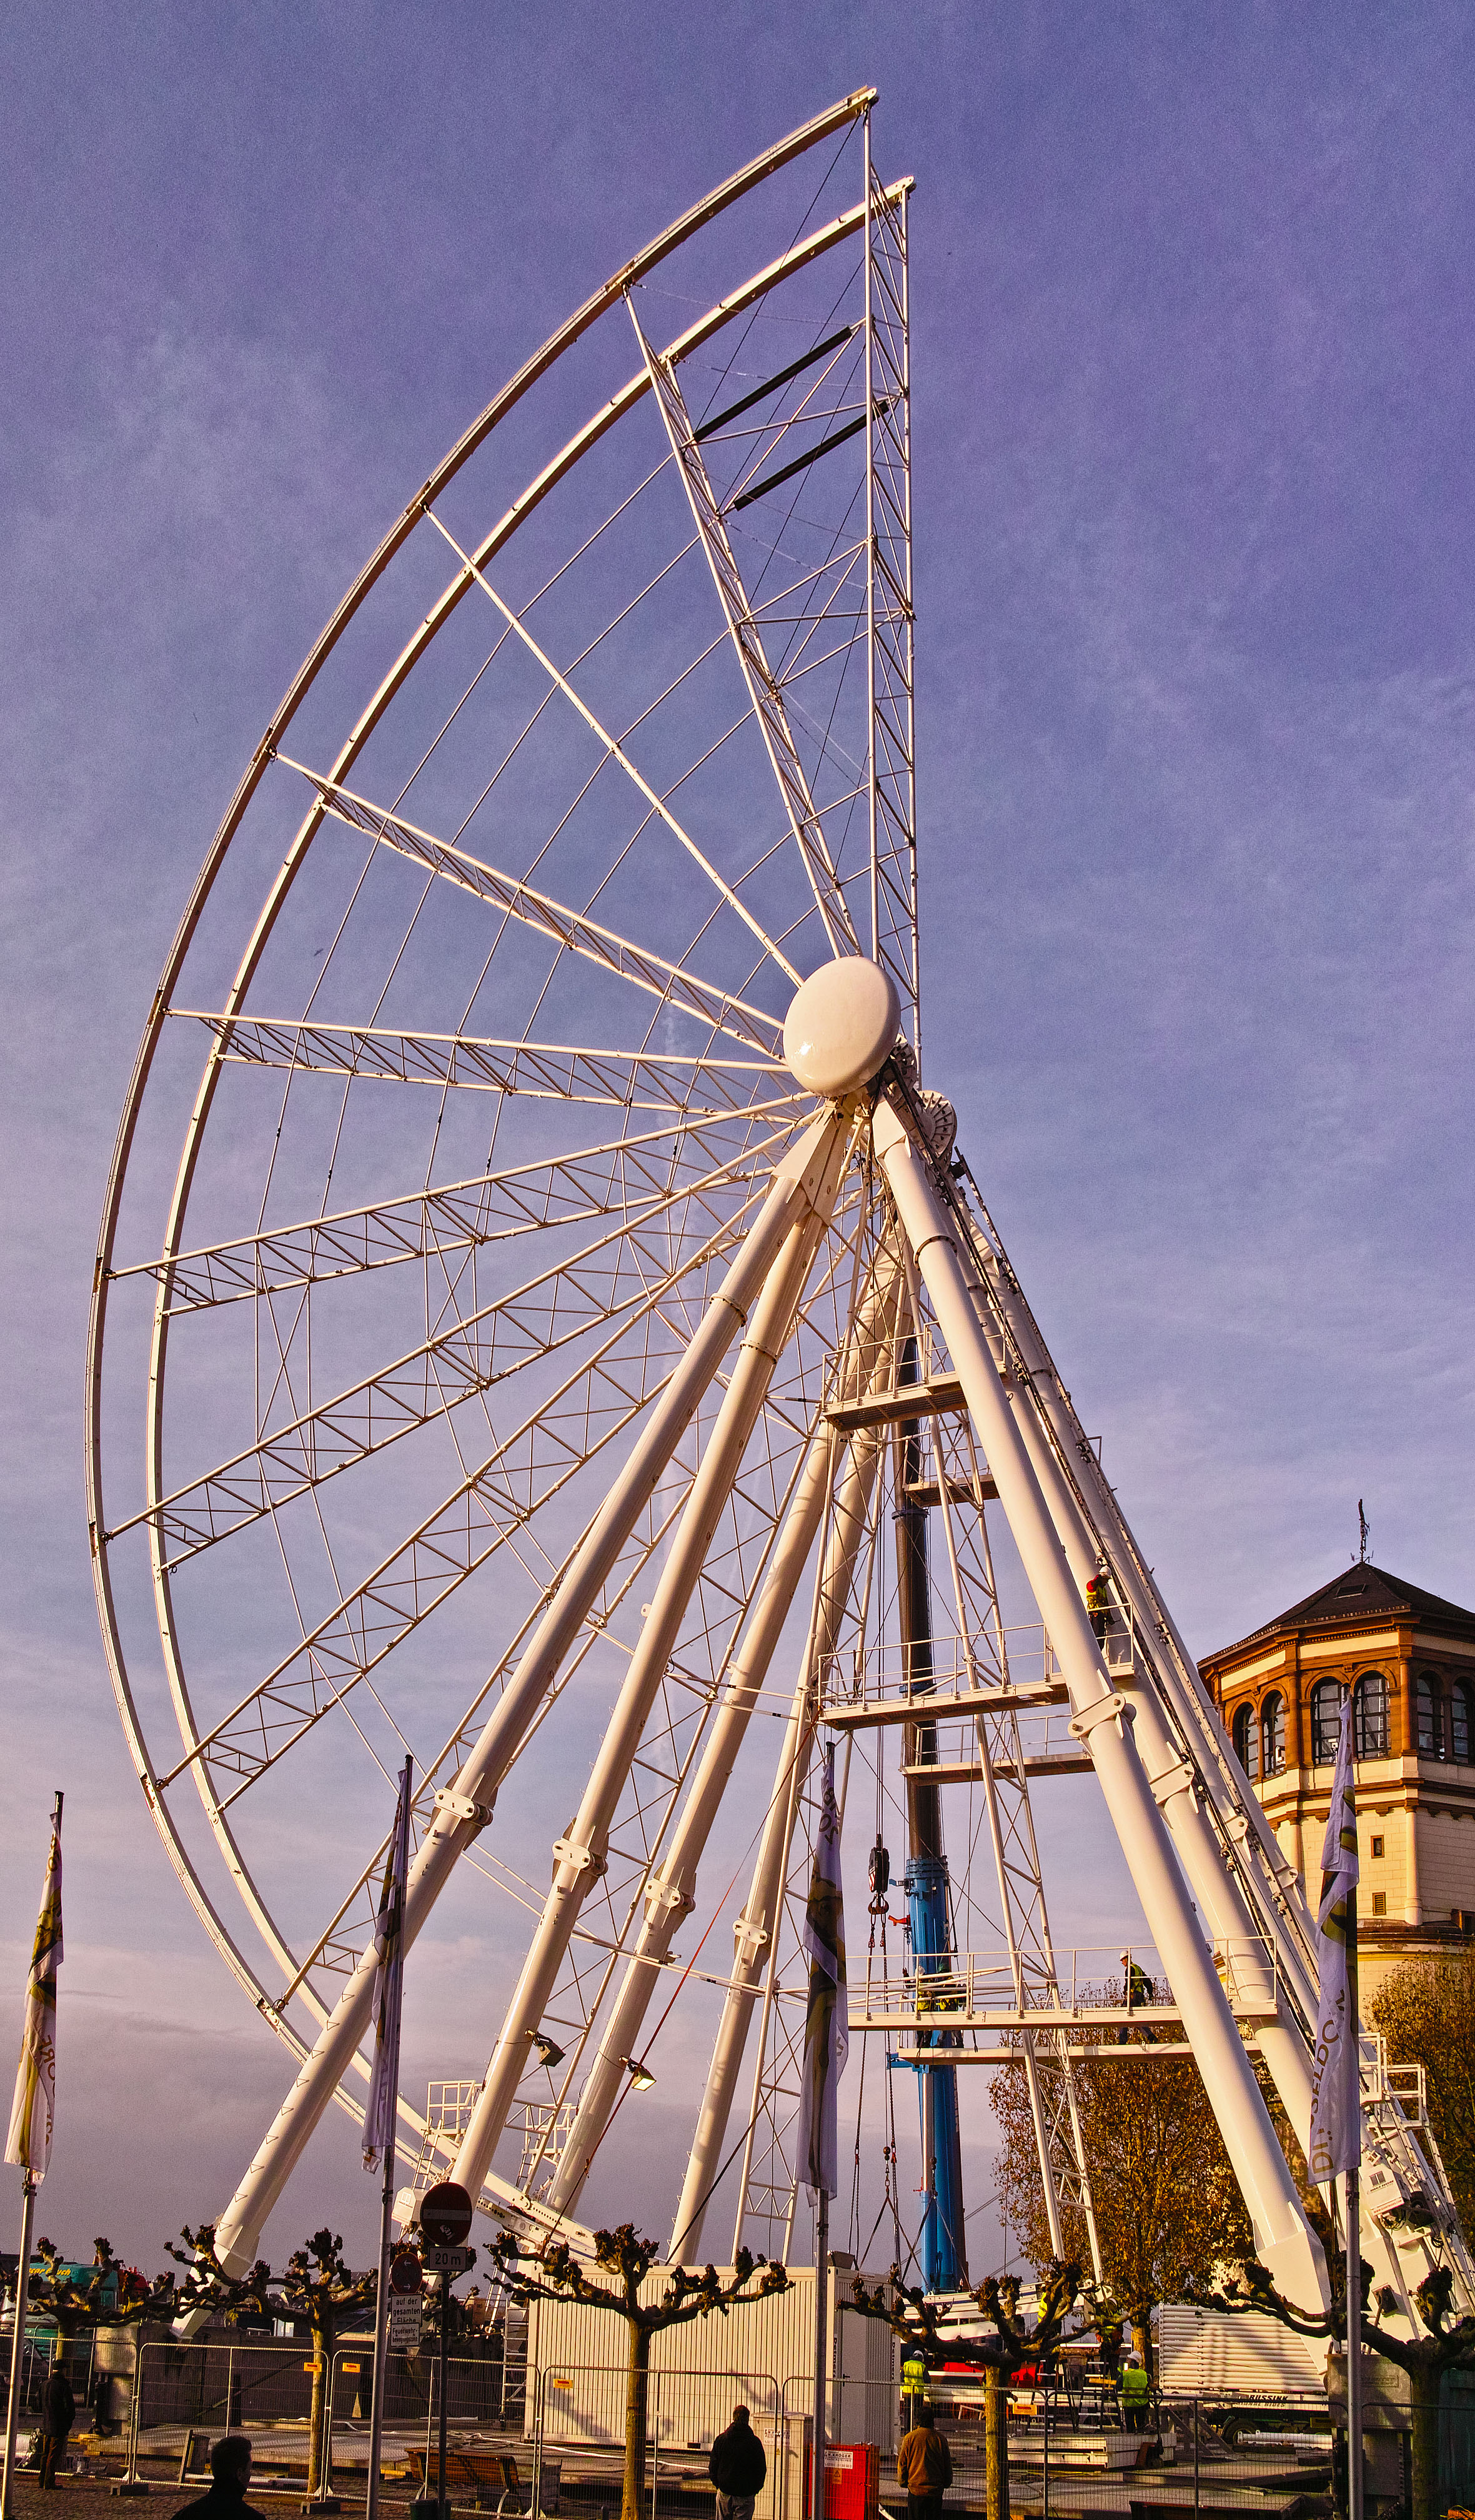 Gibbous Ferris Wheel, going up for the holidays